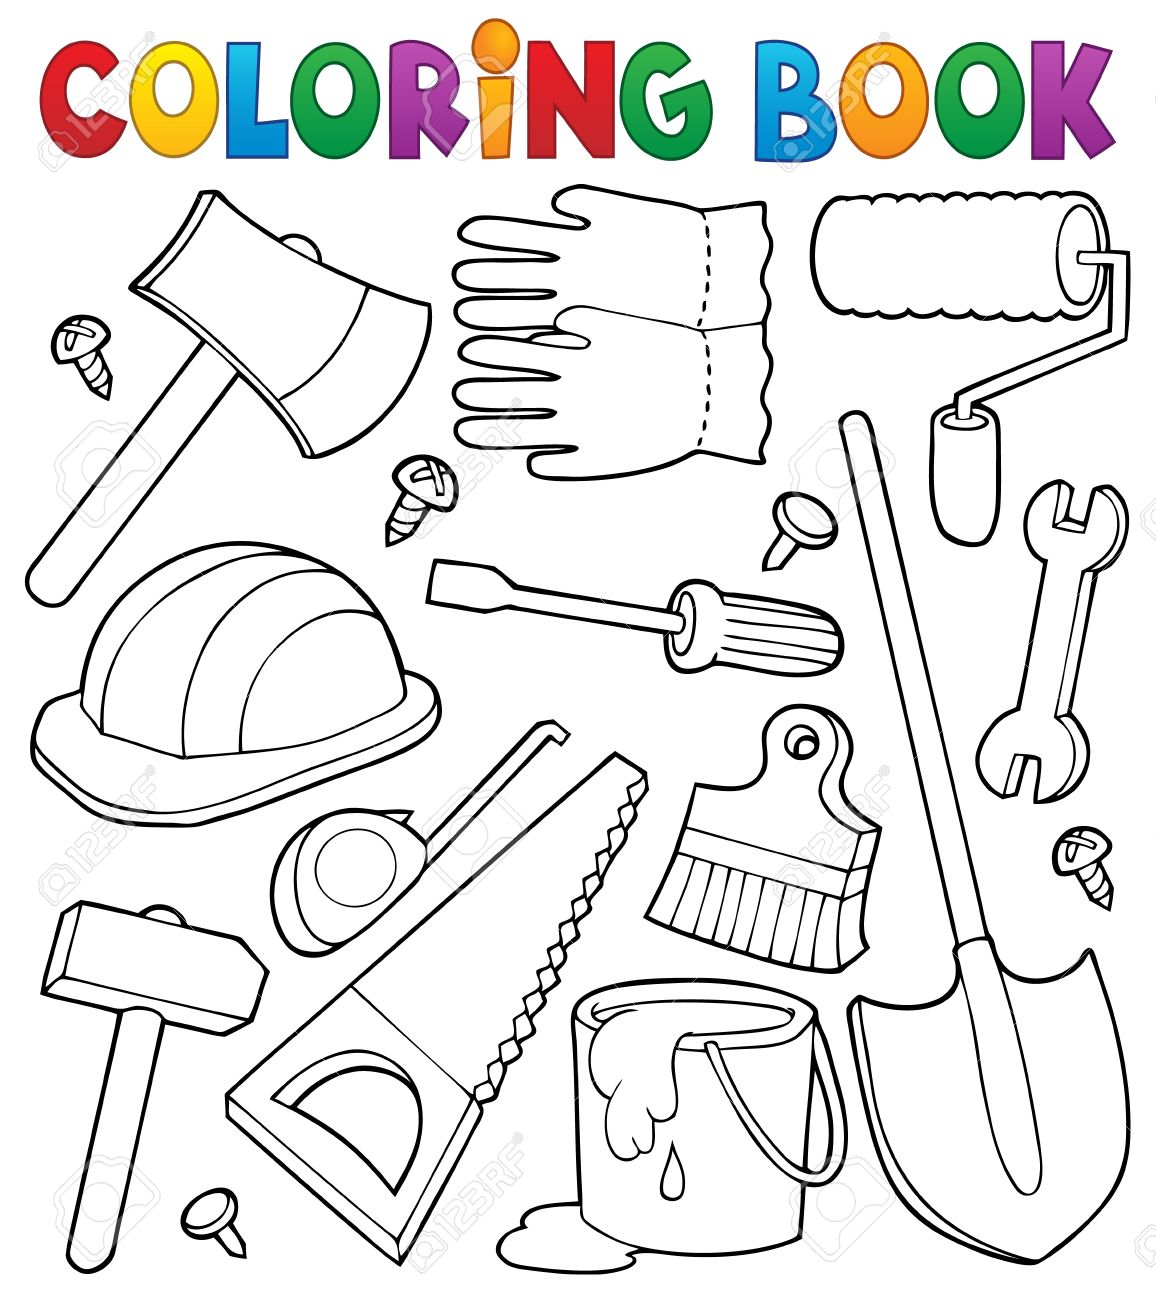 Coloring Book Tools Theme Illustration Royalty Free Cliparts ...